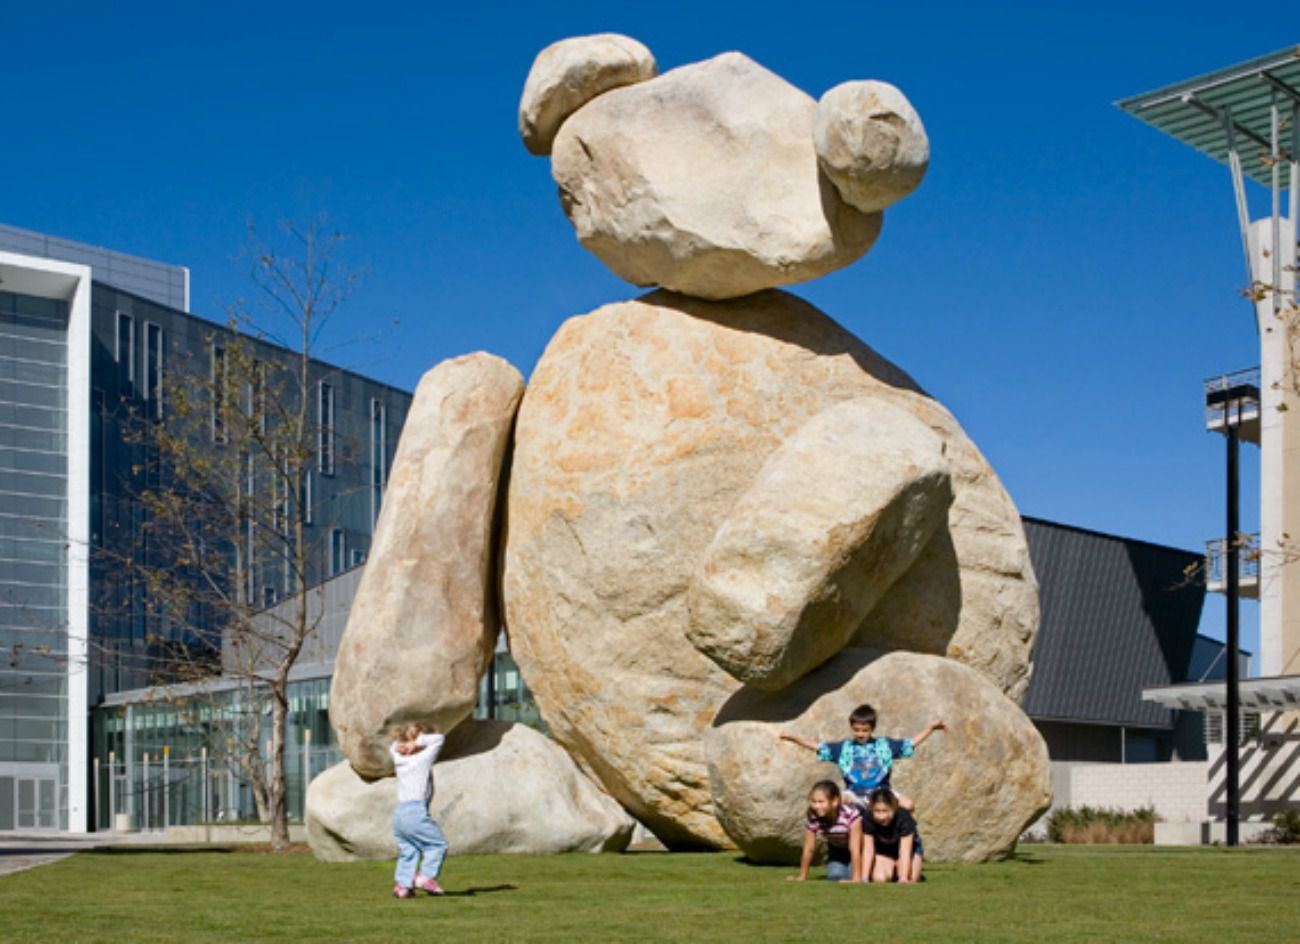 People posing in front of a large bear sculpture